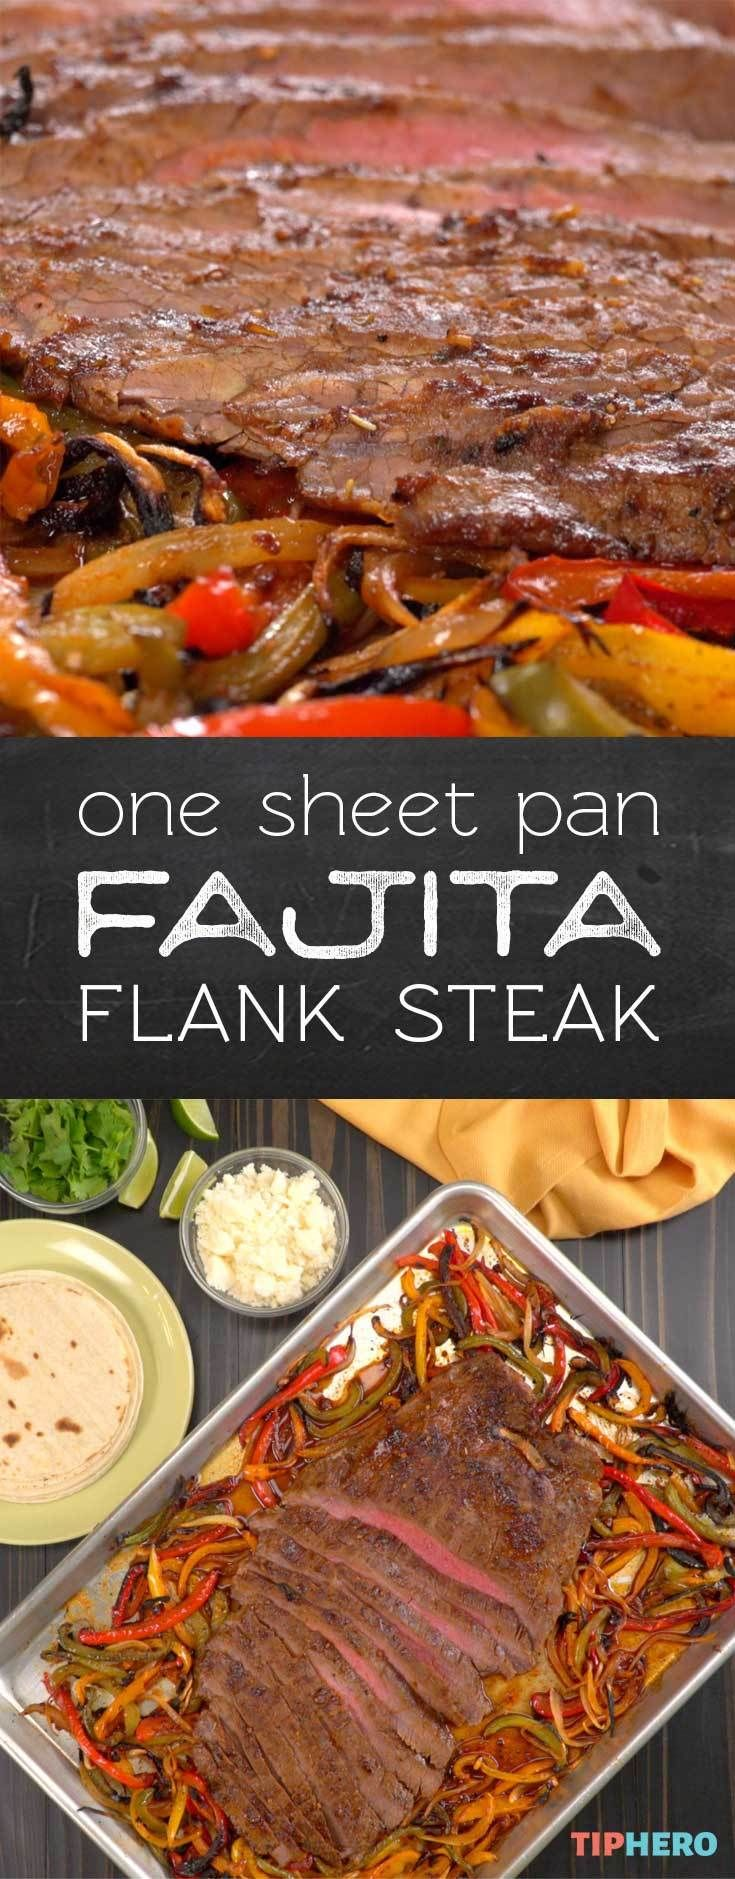 We're spicing up the easy sheet pan dinner with a flank steak with up all of the fixings for fajitas. Click for the video to see how easy it is to do.  #dinnertime #familydinner #homecooking